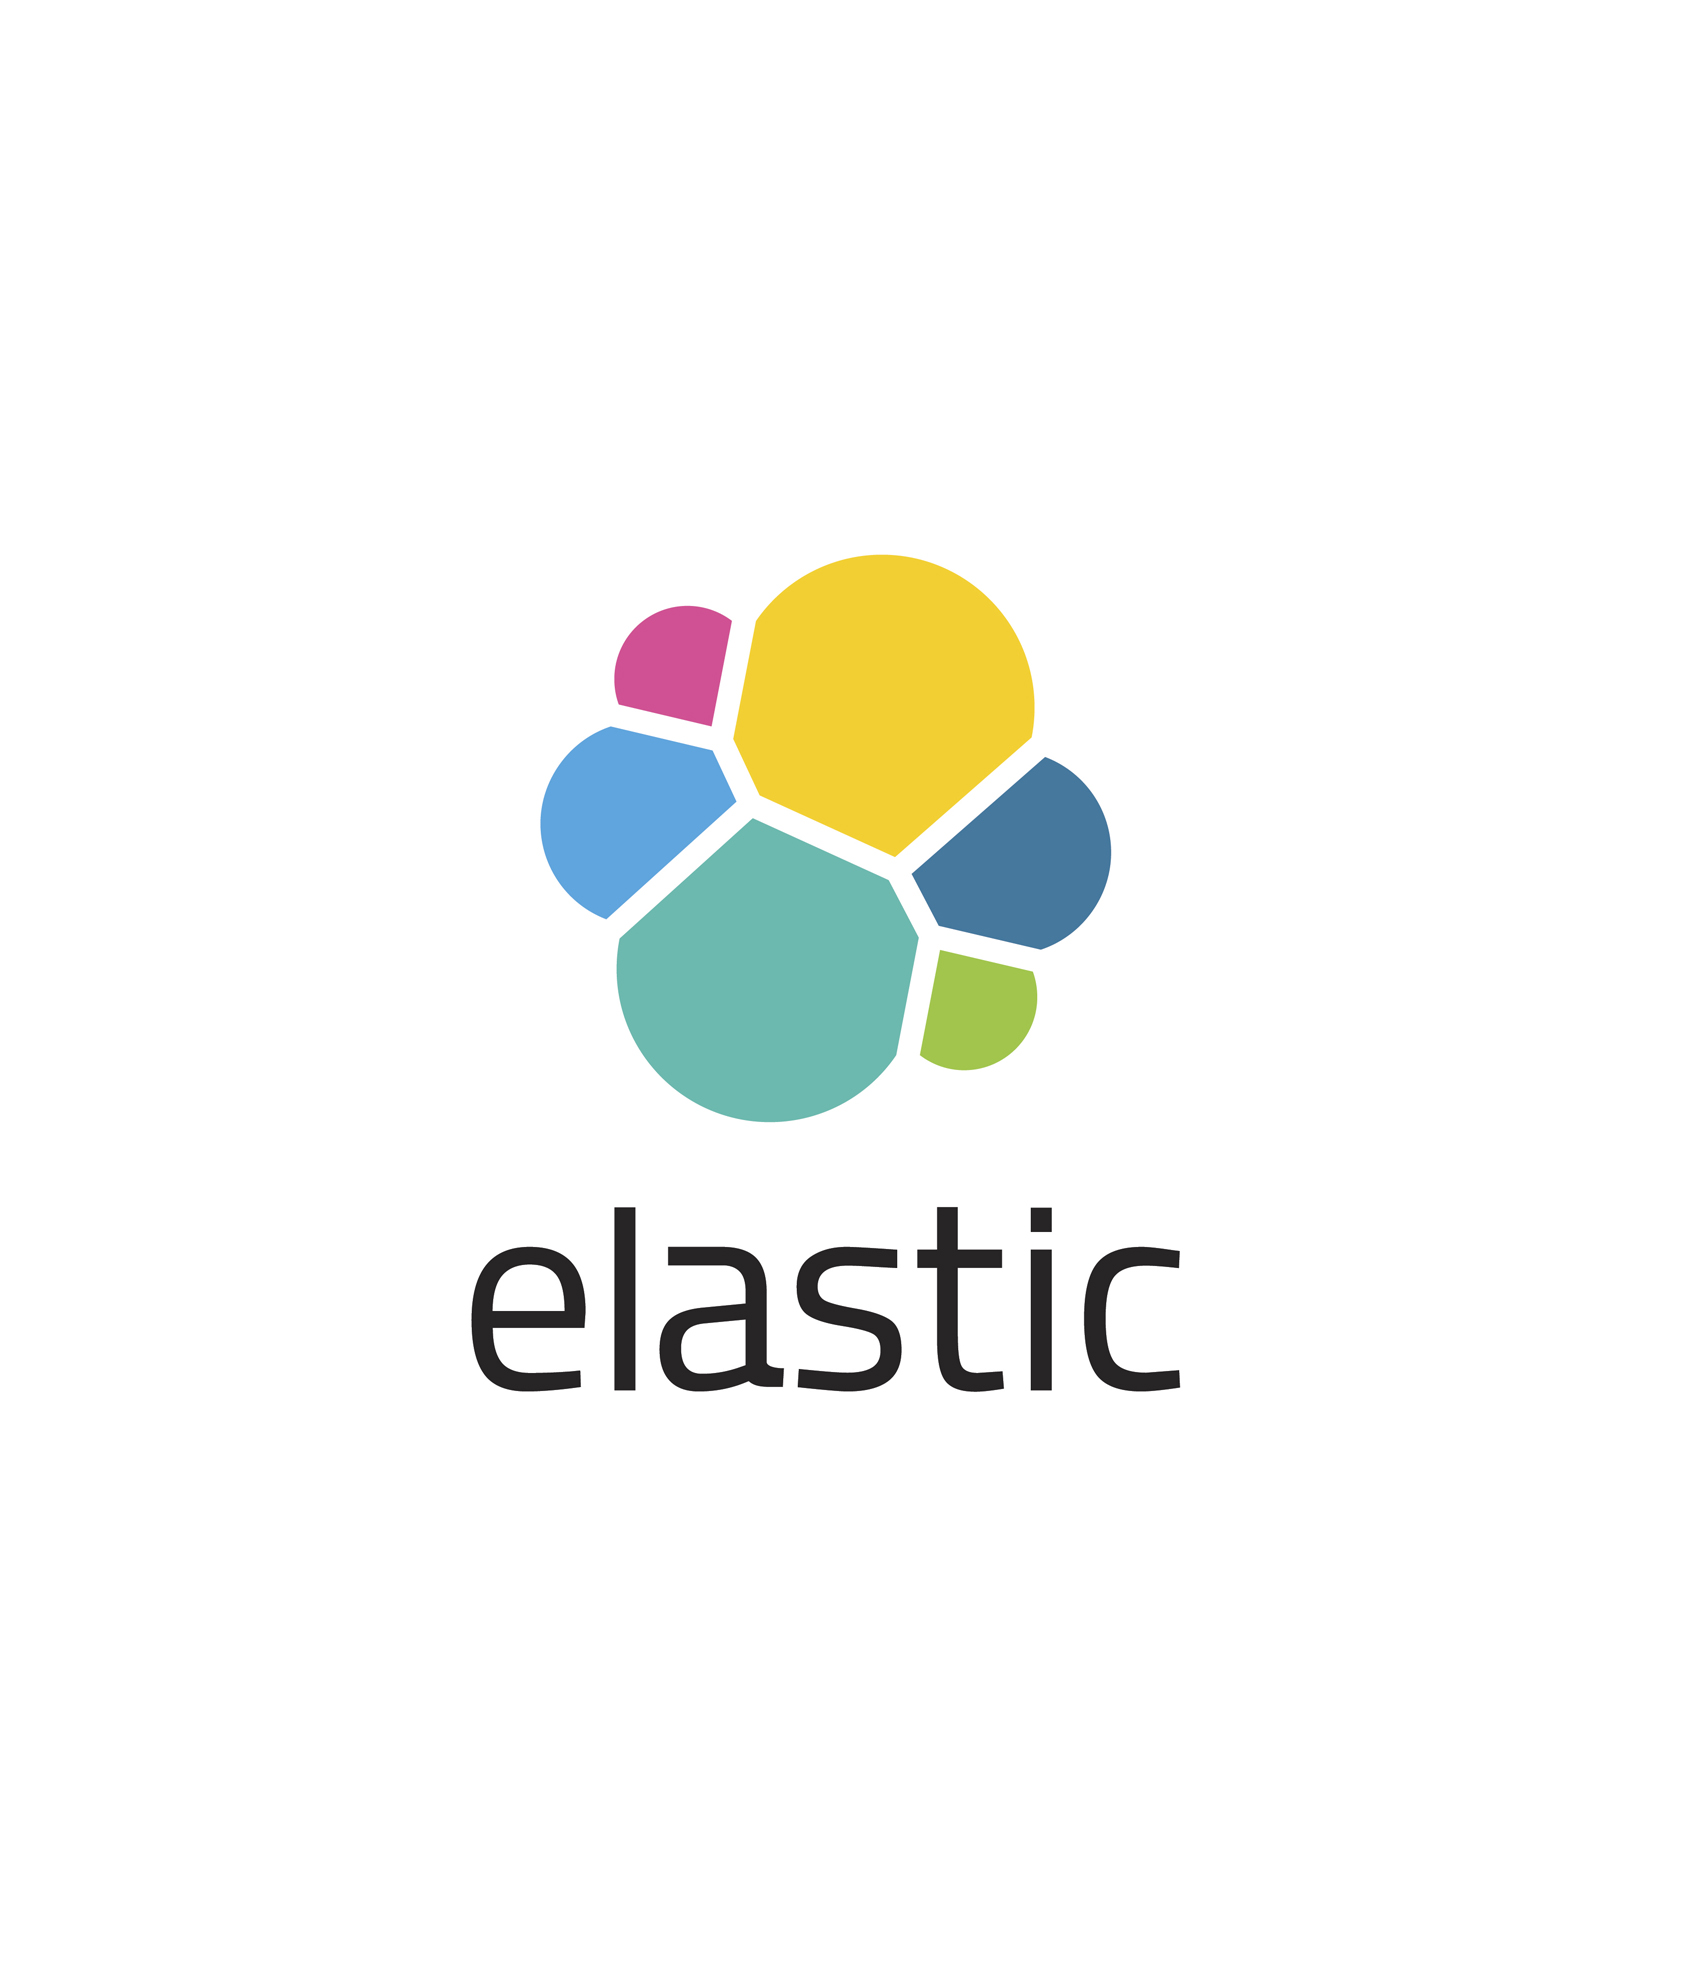 ELASTIC NV [NYSE:ESTC] FORECASTED TO EARN Q1 2021 EARNINGS OF $.40 PER SHARE